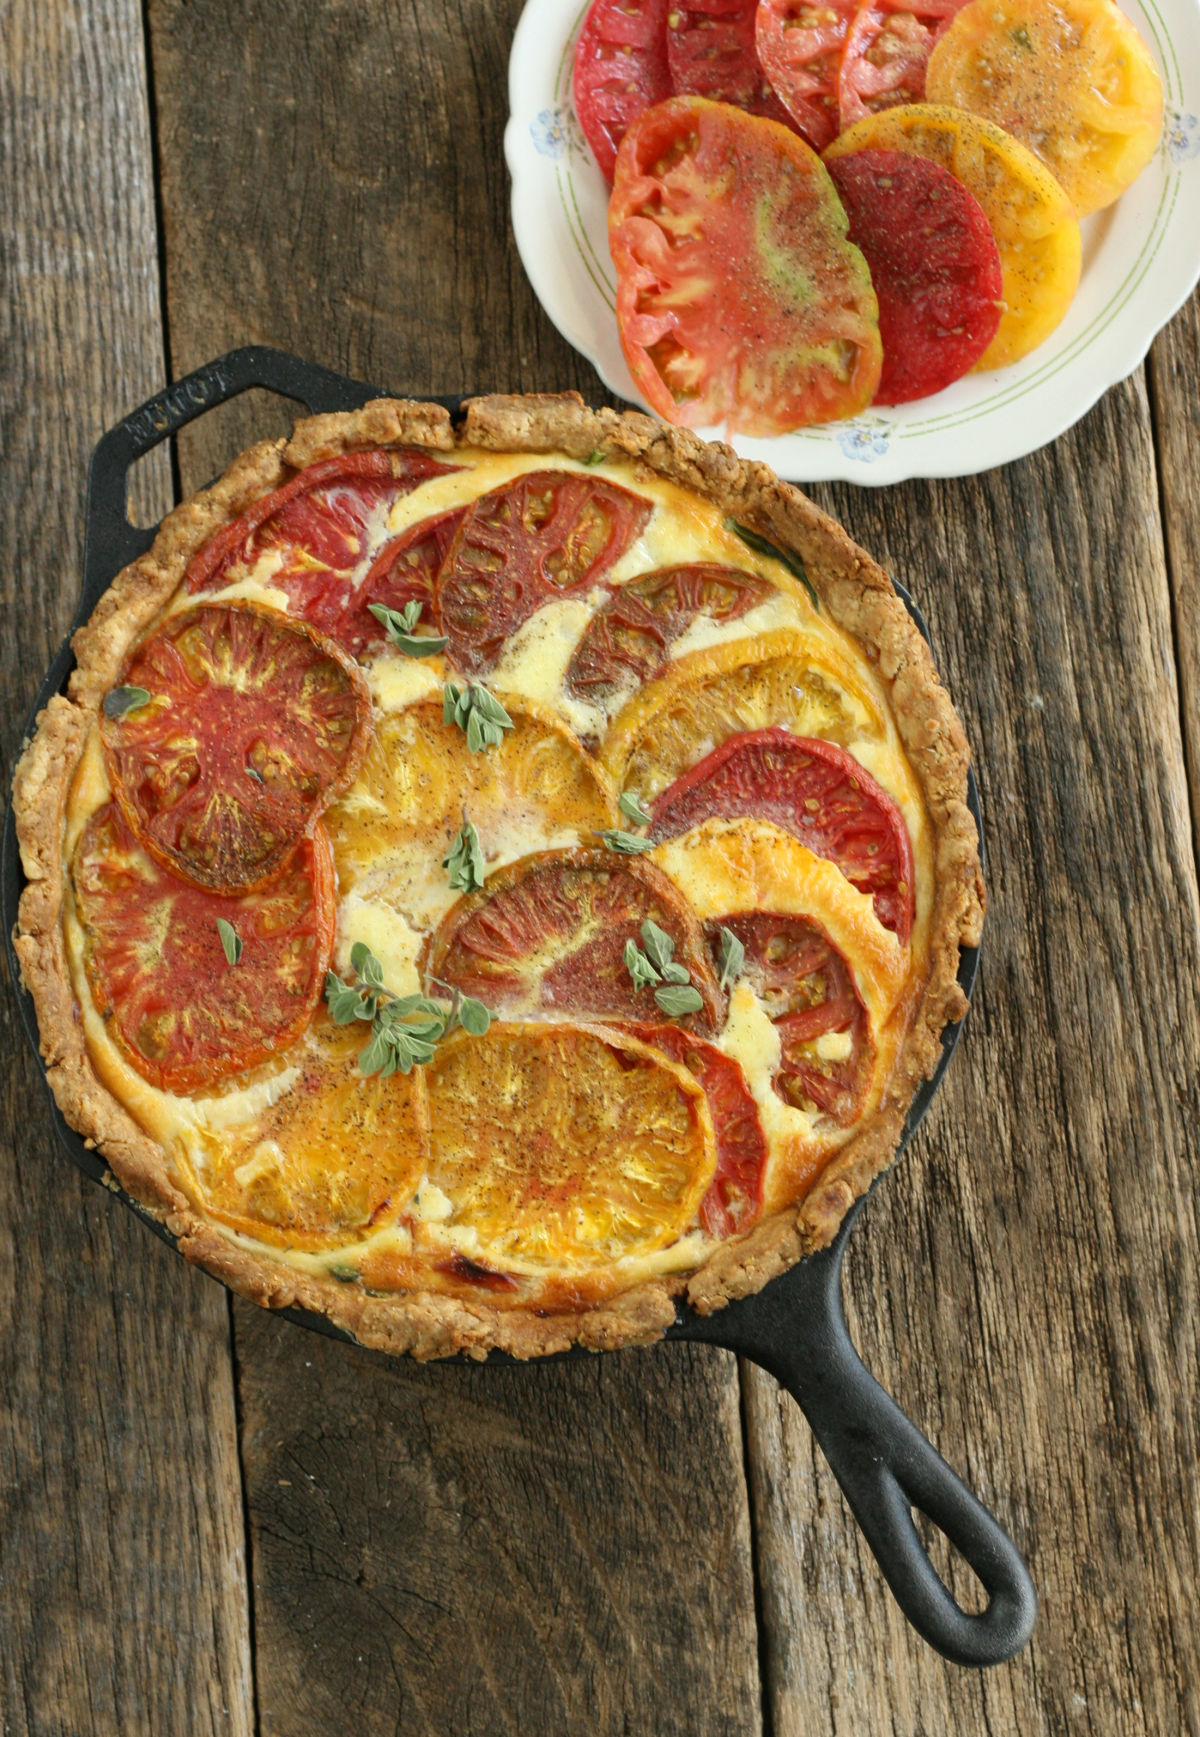 homemade quiche with heirloom tomatoes and spinach in a large cast iron skillet with a small glass plate of sliced tomoatoes.